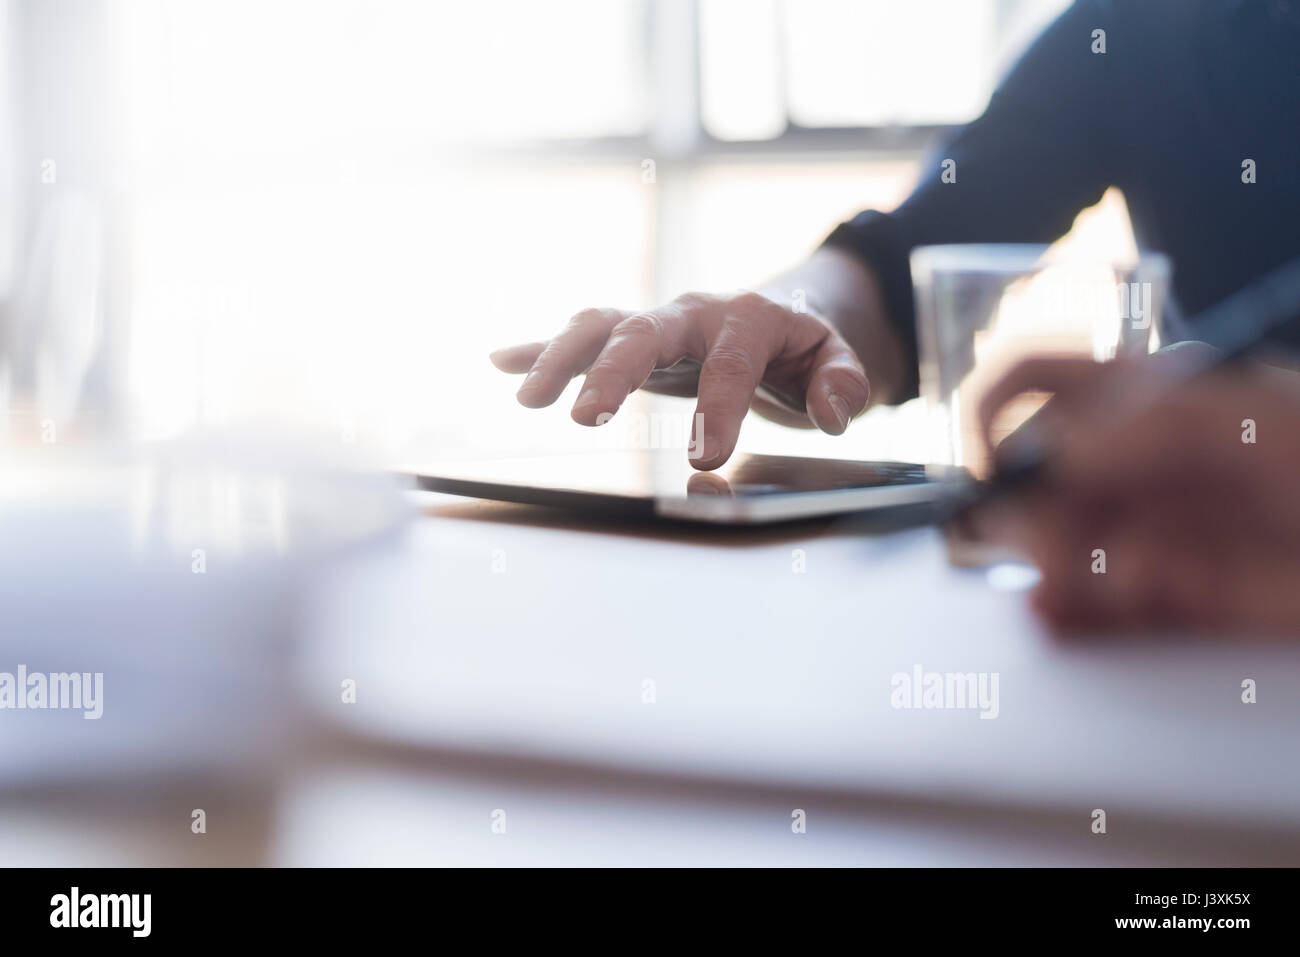 Man using digital tablet on desk, close up of hand - Stock Image